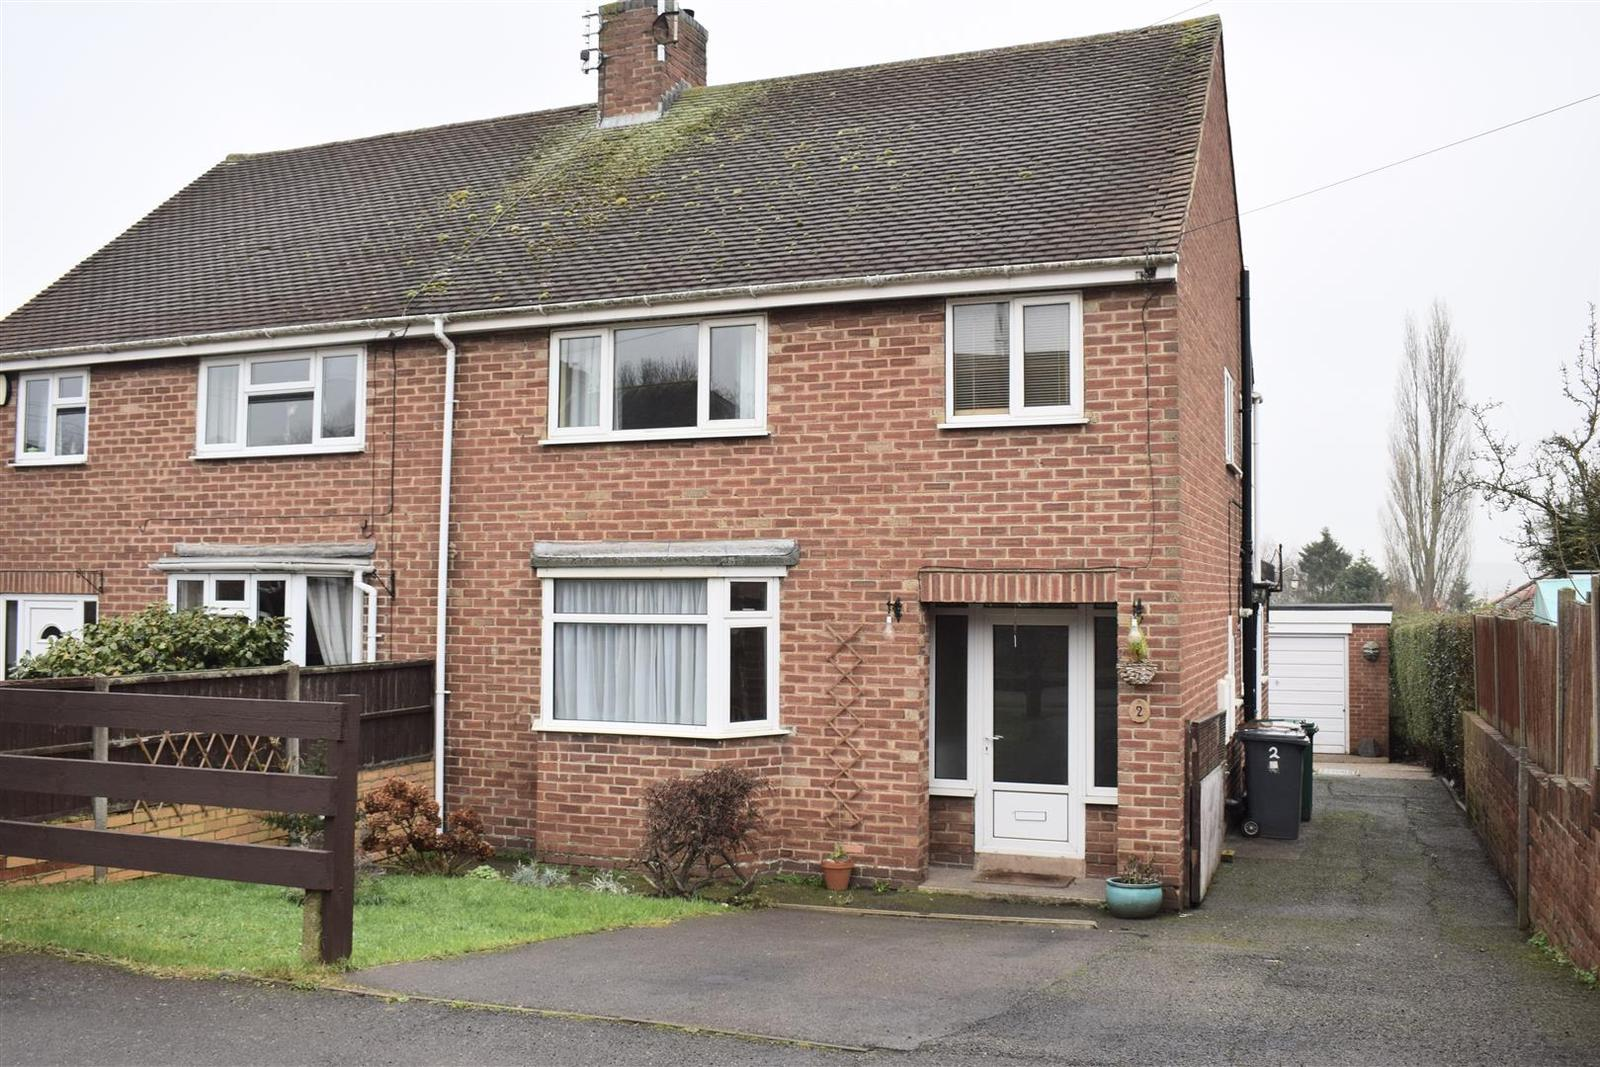 3 Bedrooms Detached House for sale in Longlands Road, Midway, Swadlincote